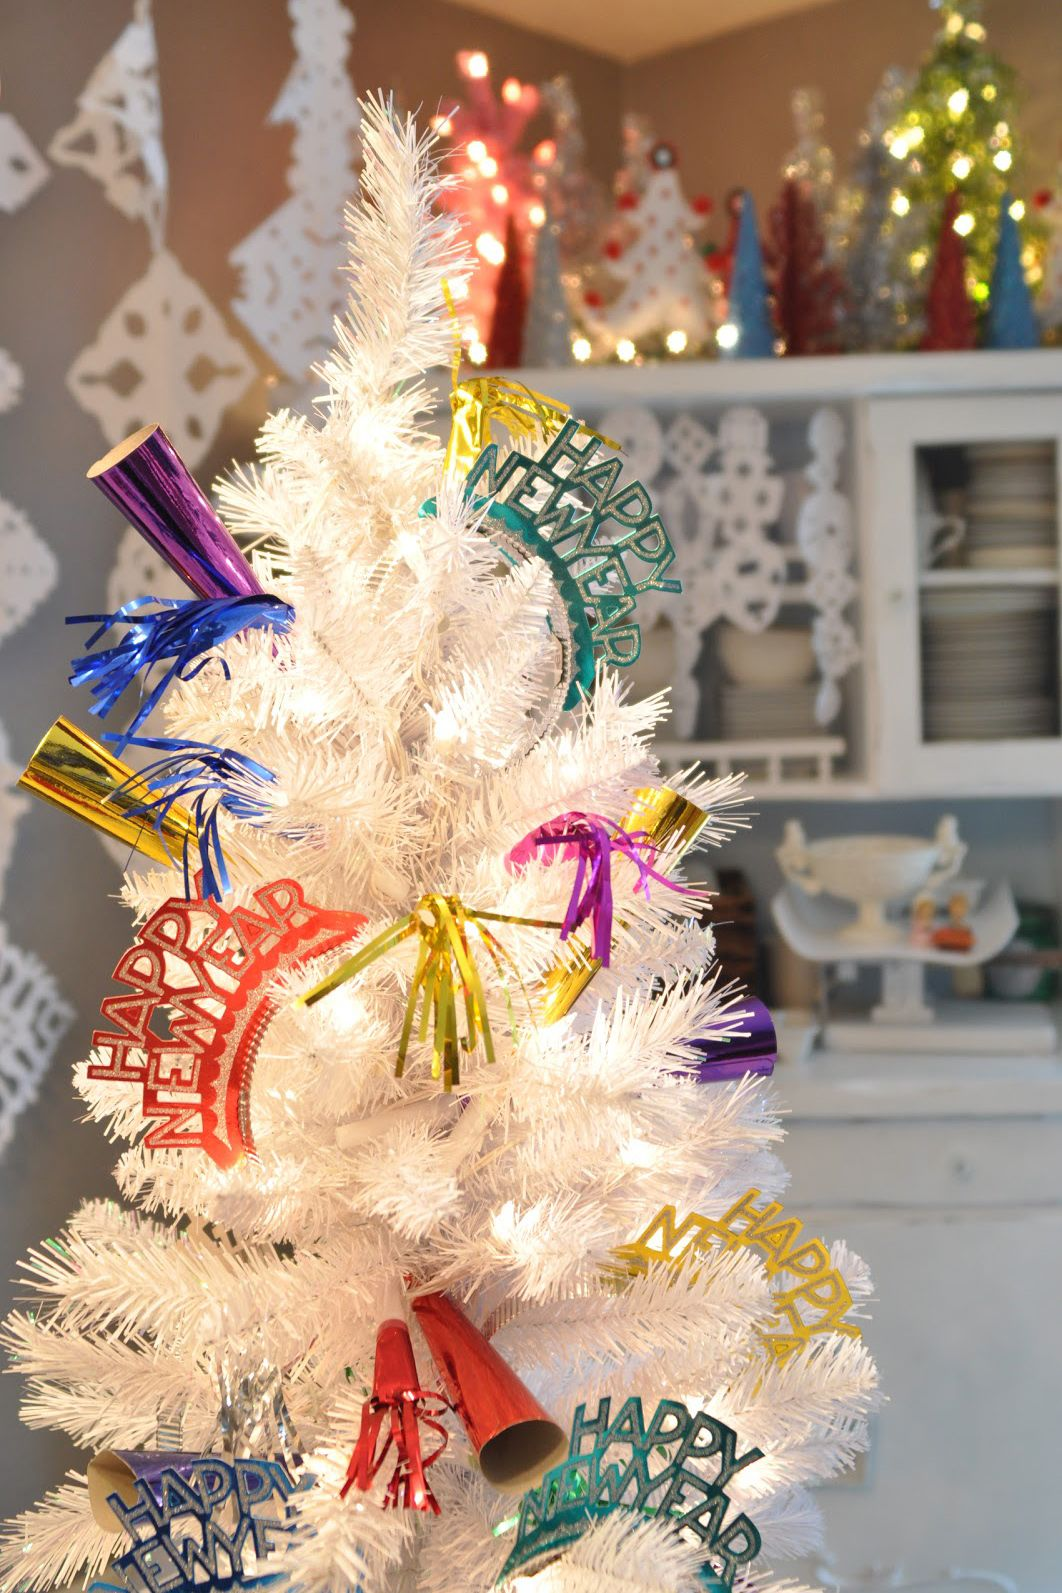 """<p>Strip your tree down to the needles and lights, and then adorn it with party poppers and streamers.&nbsp&#x3B;It doesn't get easier than that!</p><p><em data-redactor-tag=""""em""""><a href=""""http://www.domesticfashionista.com/2011/12/new-years-eve-tree.html"""" target=""""_blank"""" data-tracking-id=""""recirc-text-link"""" data-href=""""http://www.domesticfashionista.com/2011/12/new-years-eve-tree.html"""">Get the tutorial from Domestic Fashionista »</a></em></p>"""